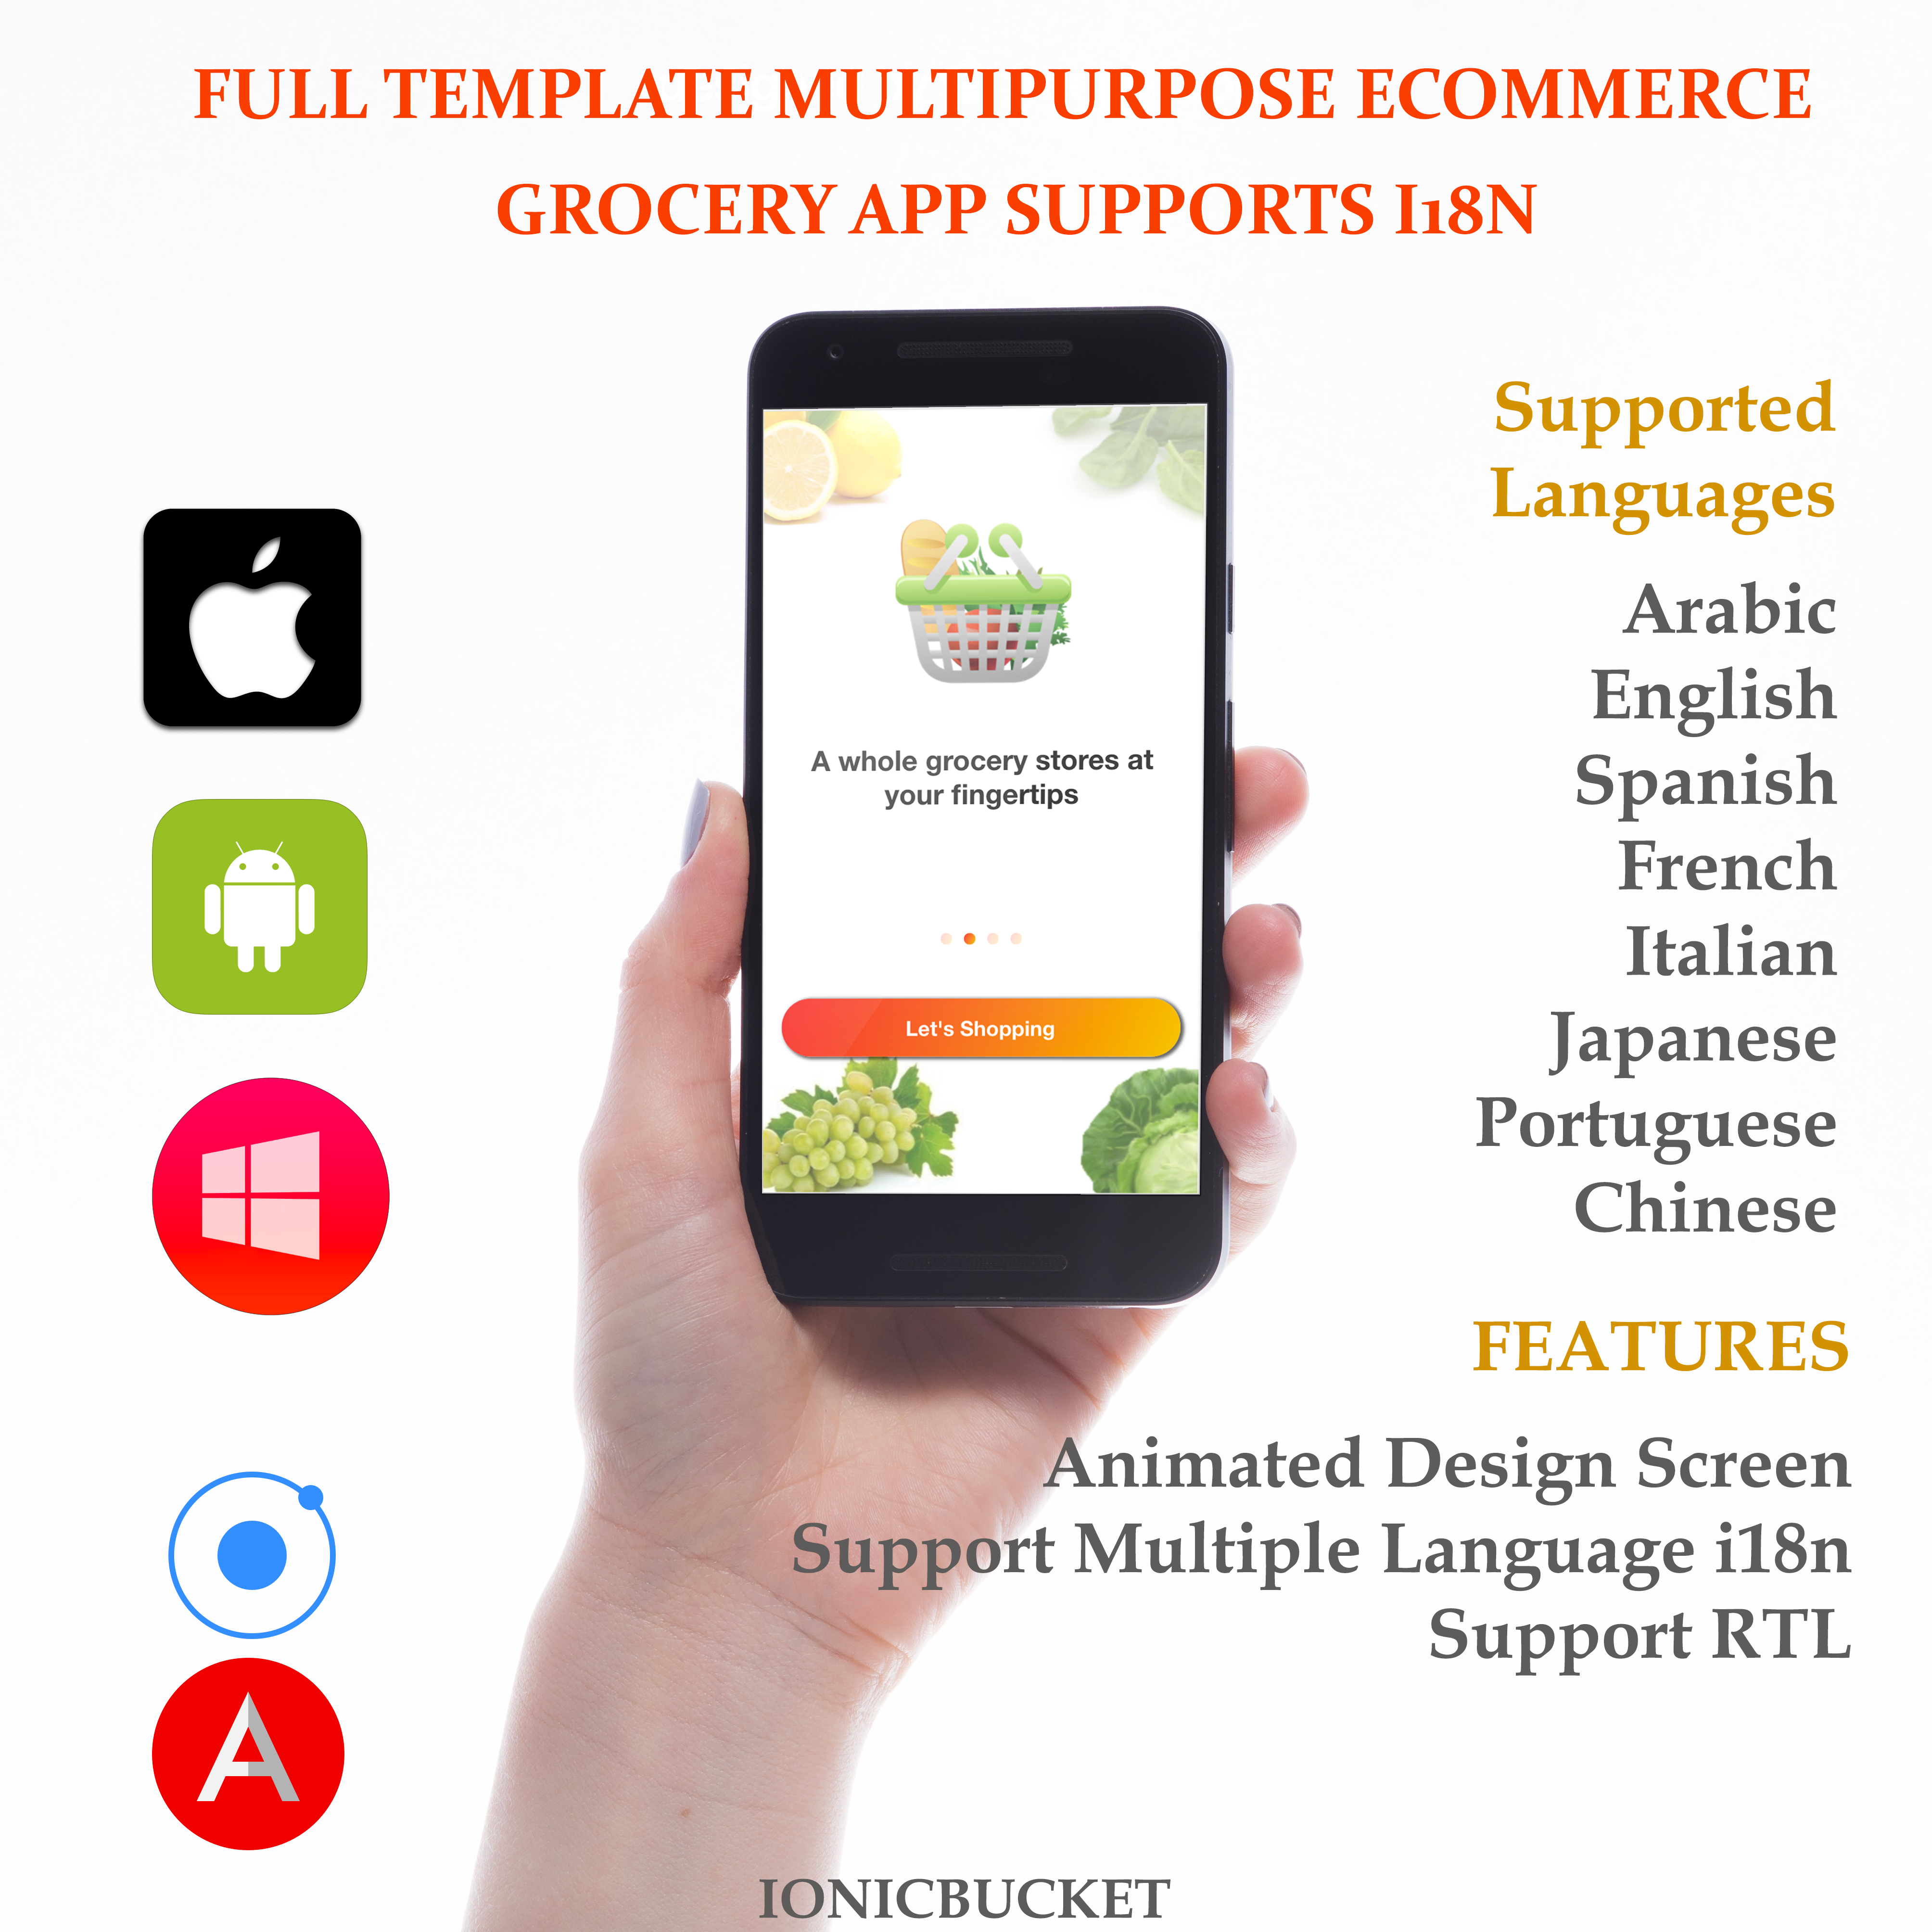 Complete Multipurpose eCommerce Template UI Grocery App Supports Multiple Language i18n - 3